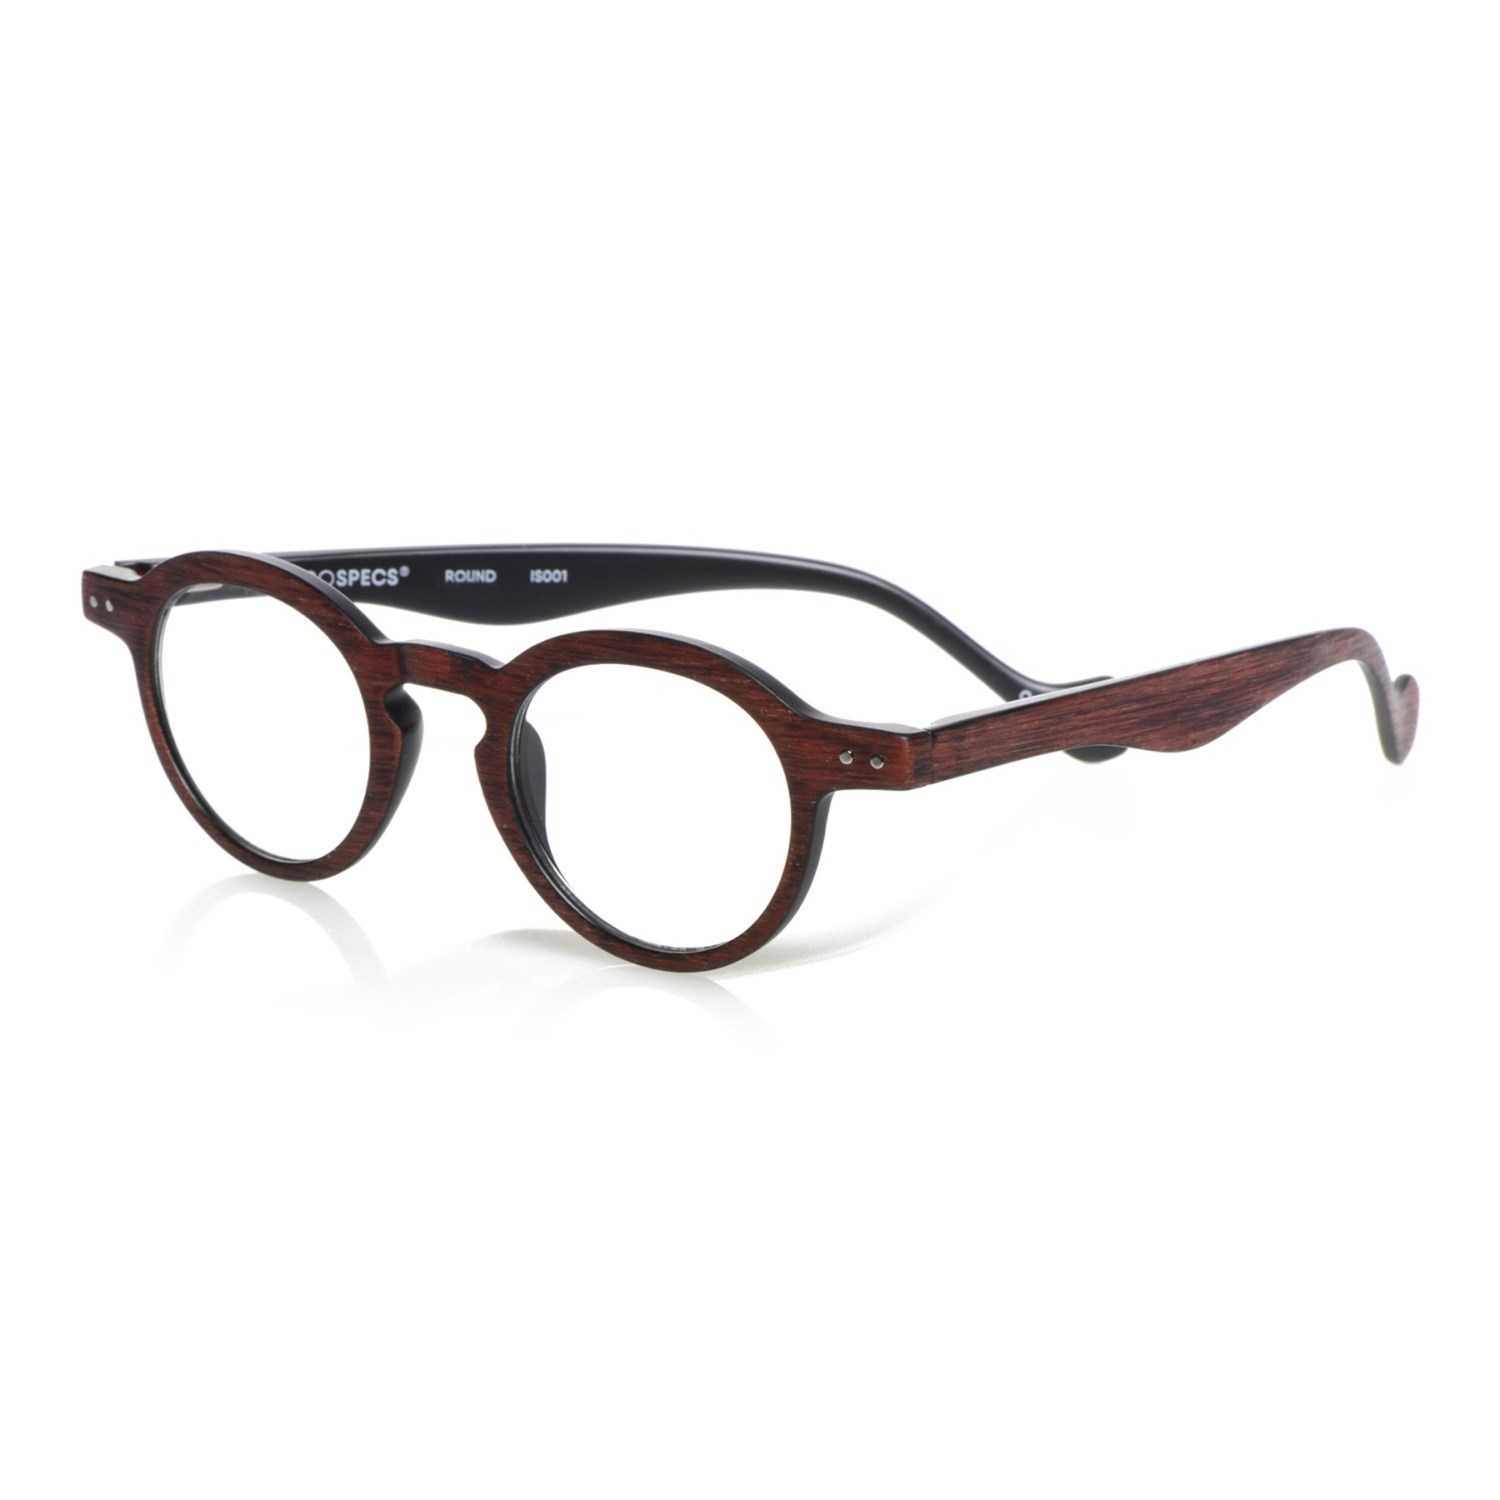 e45a8dfca2 INTROSPECS Round Reading Glasses (For Men and Women) - Save 60%